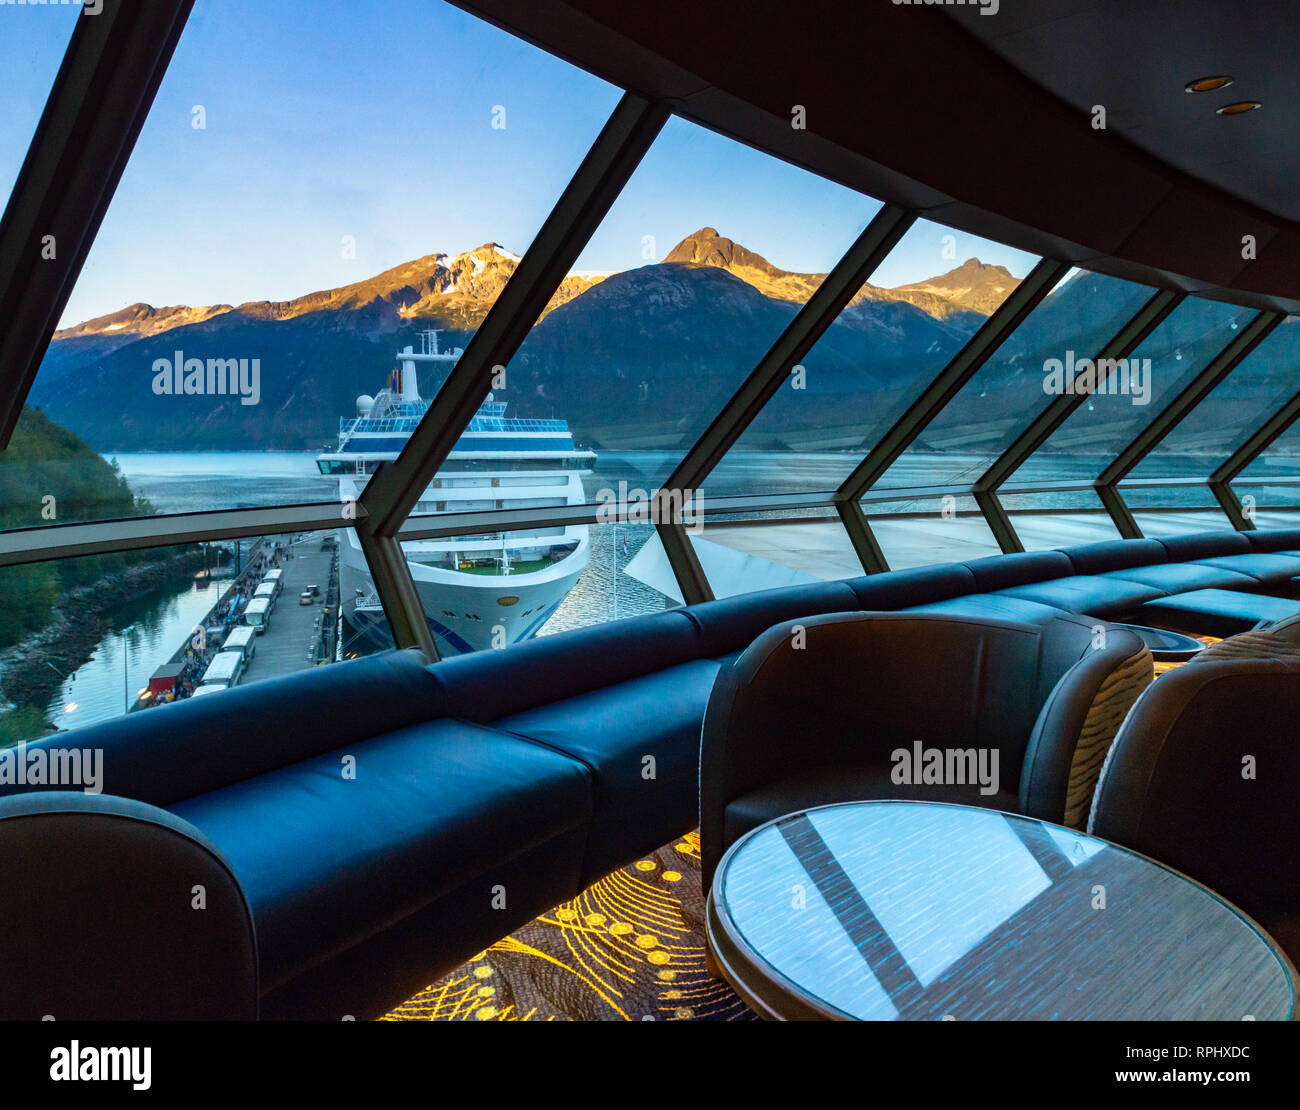 September 15, 2018 - Skagway, AK:  Sunrise on mountains and Princess Cruises ship berthed in port, early morning  from inside a quiet Crow's Nest Loun - Stock Image